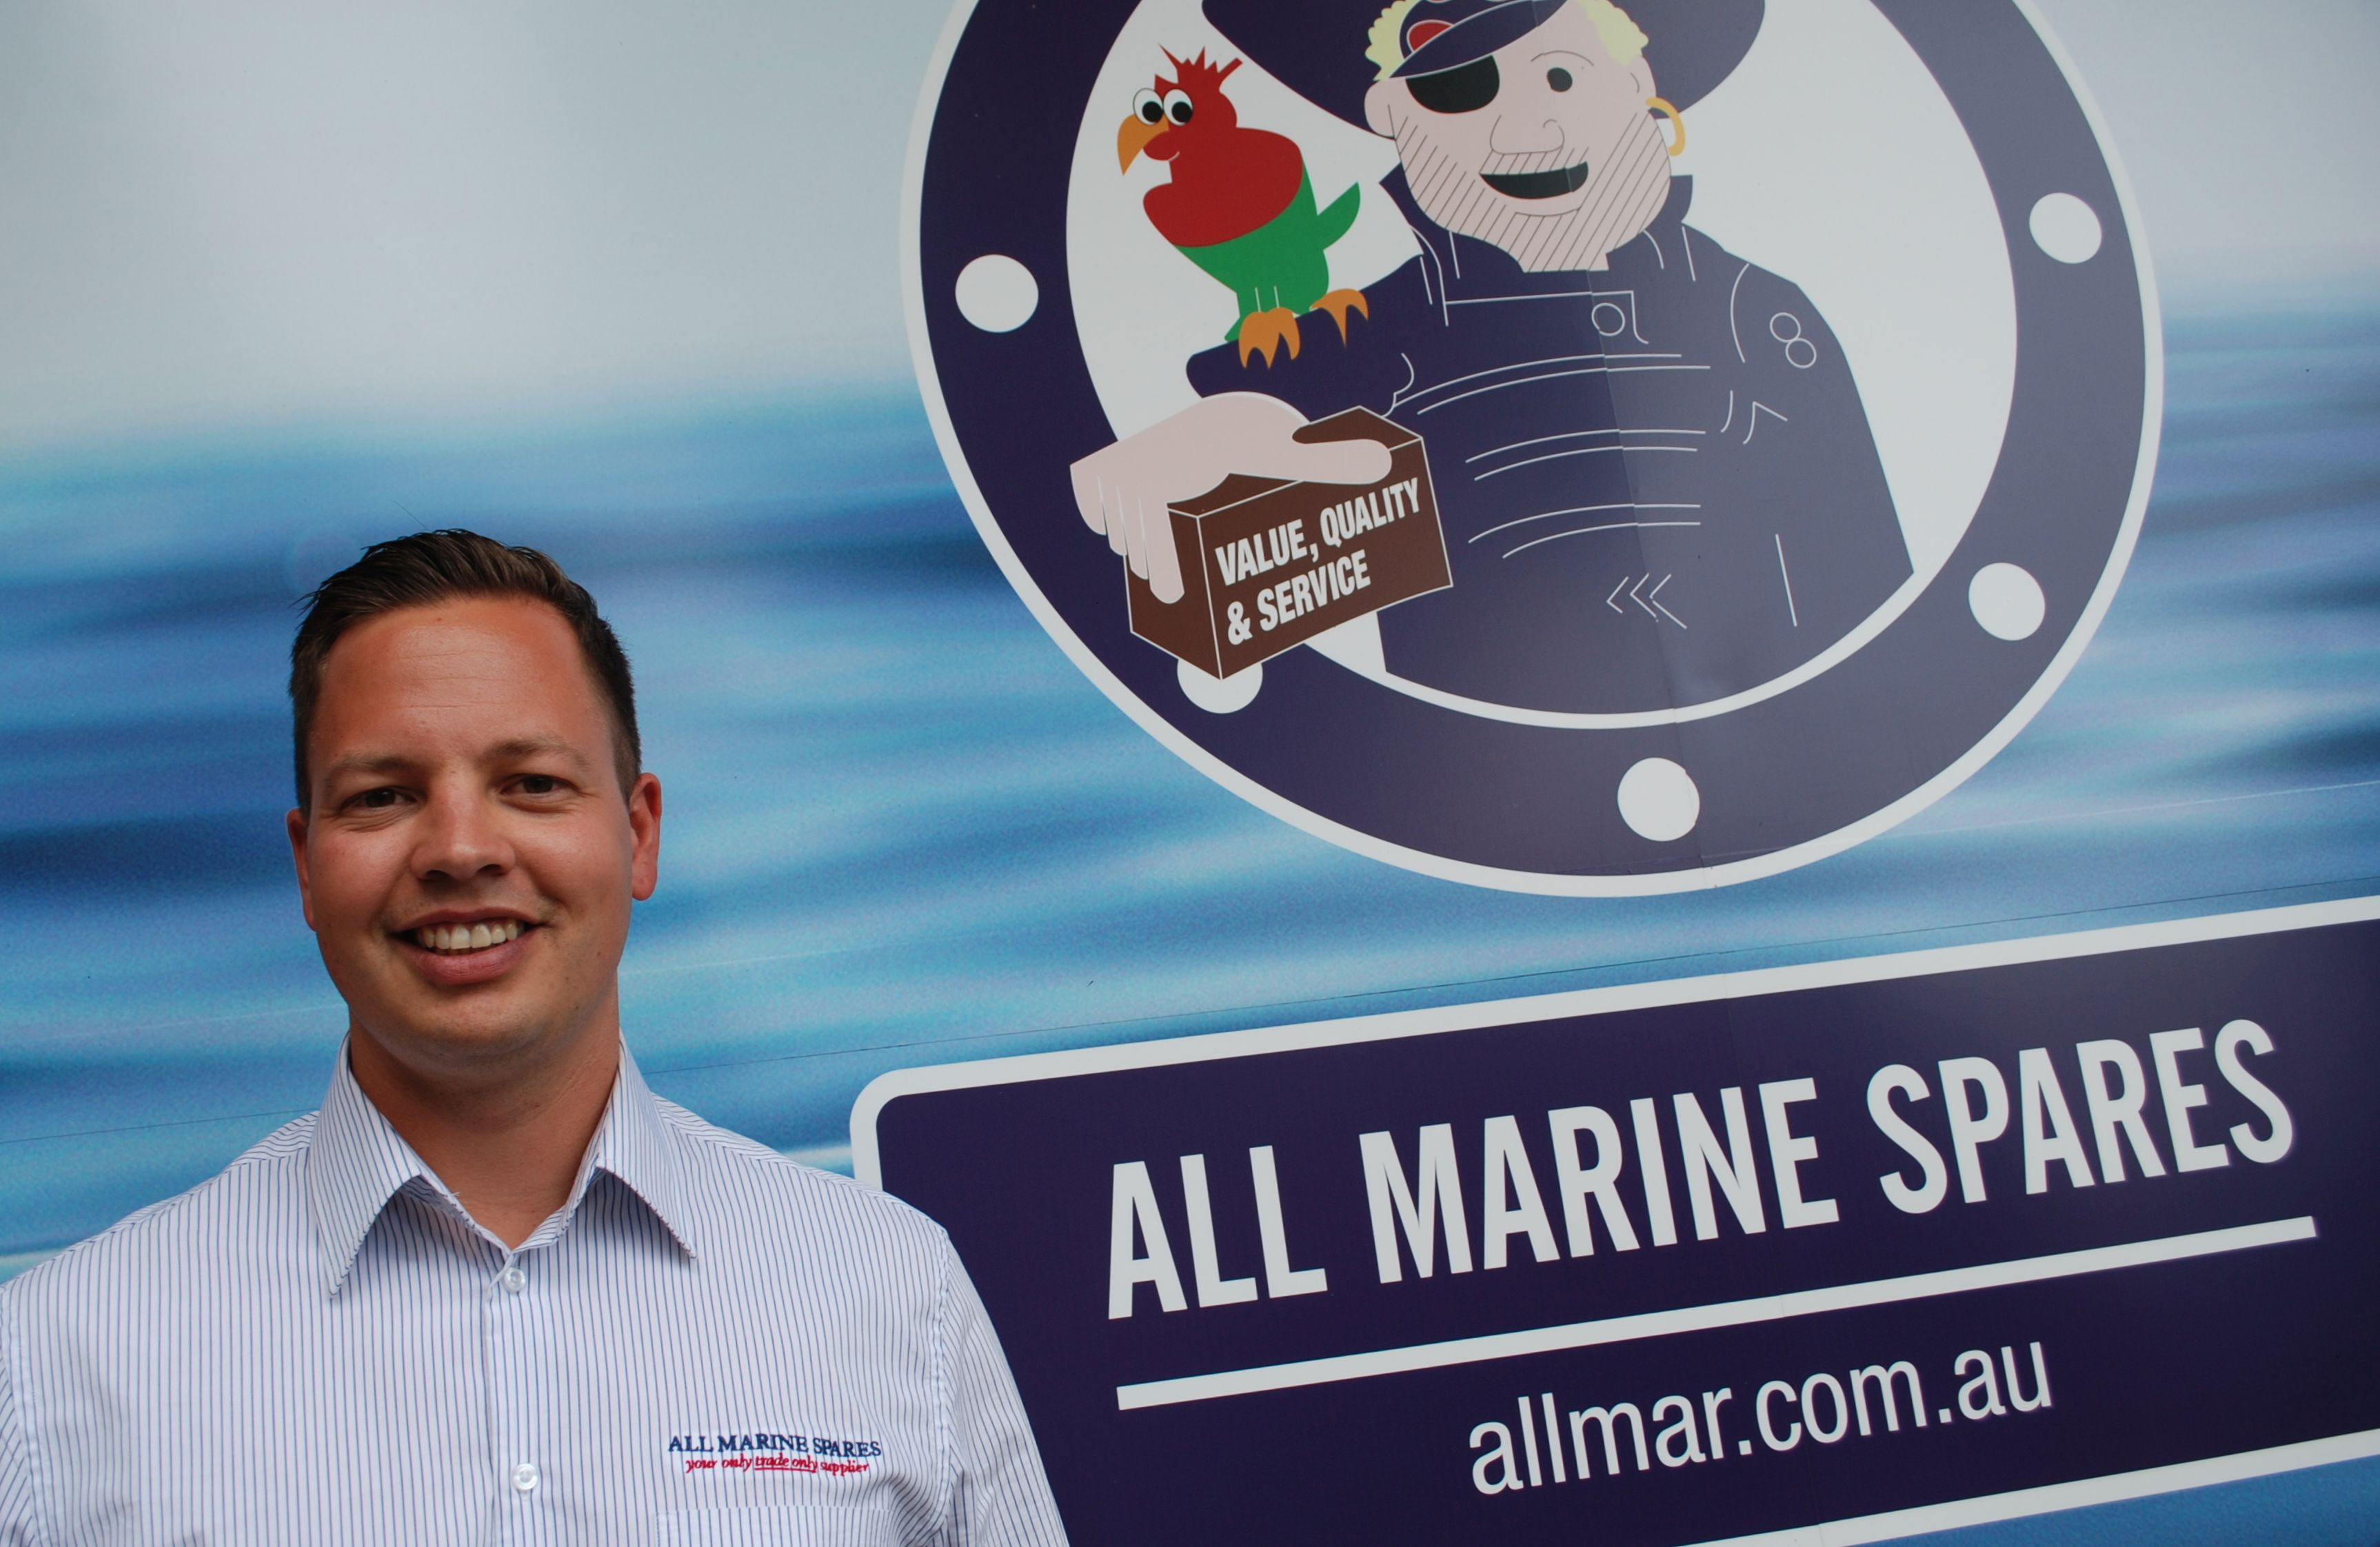 PROFILE: Jason Mitchell, All Marine Spares